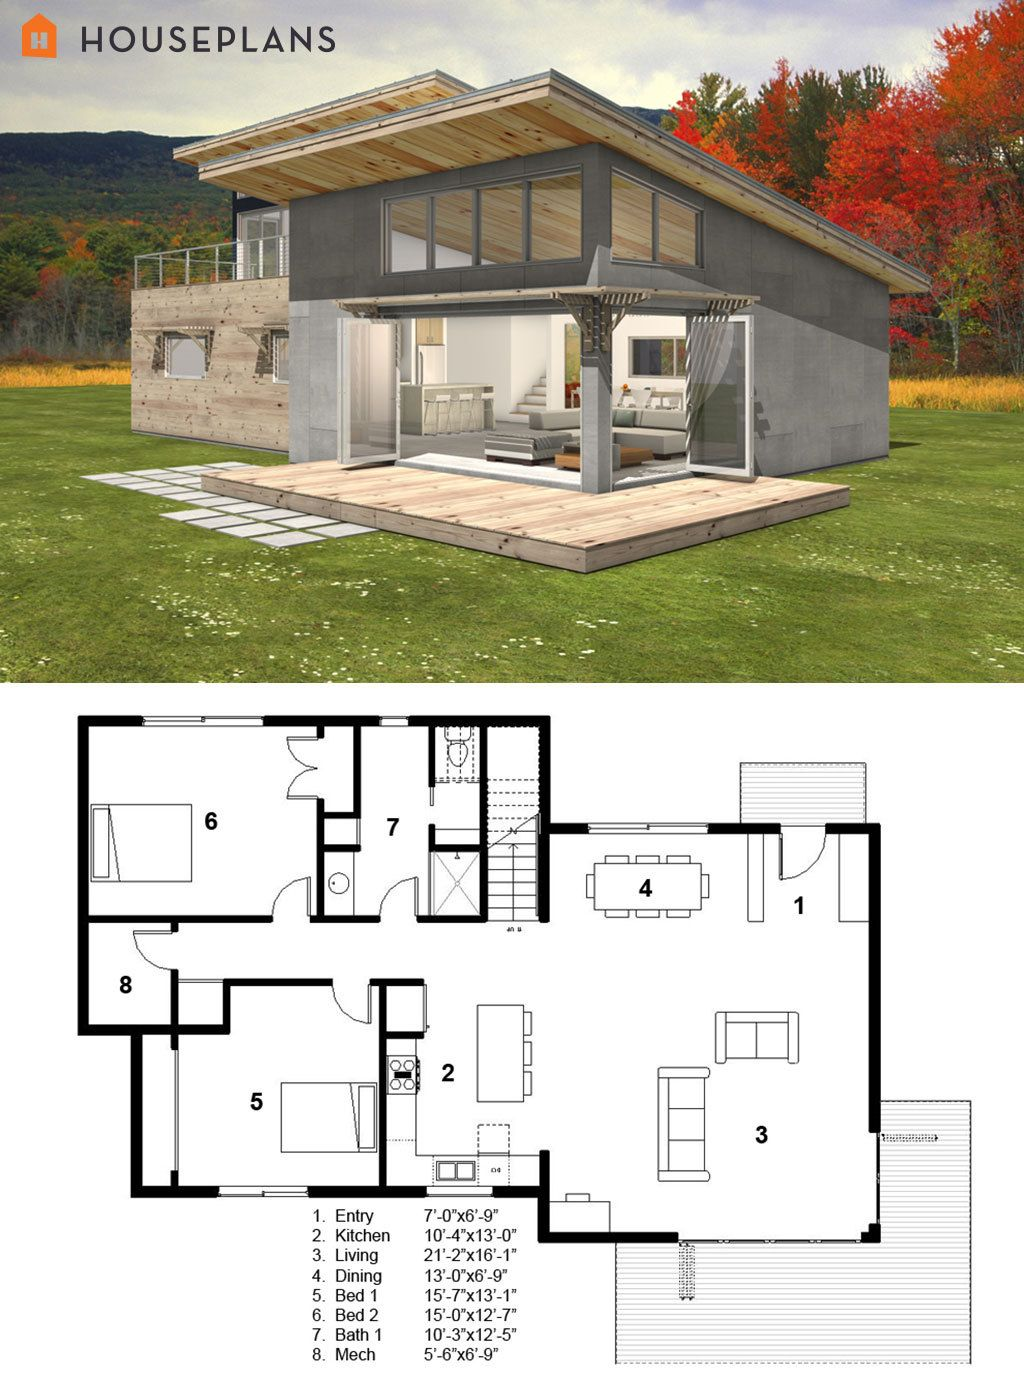 Modern style house plan 3 beds baths 2115 sq ft for Modern home design 2015